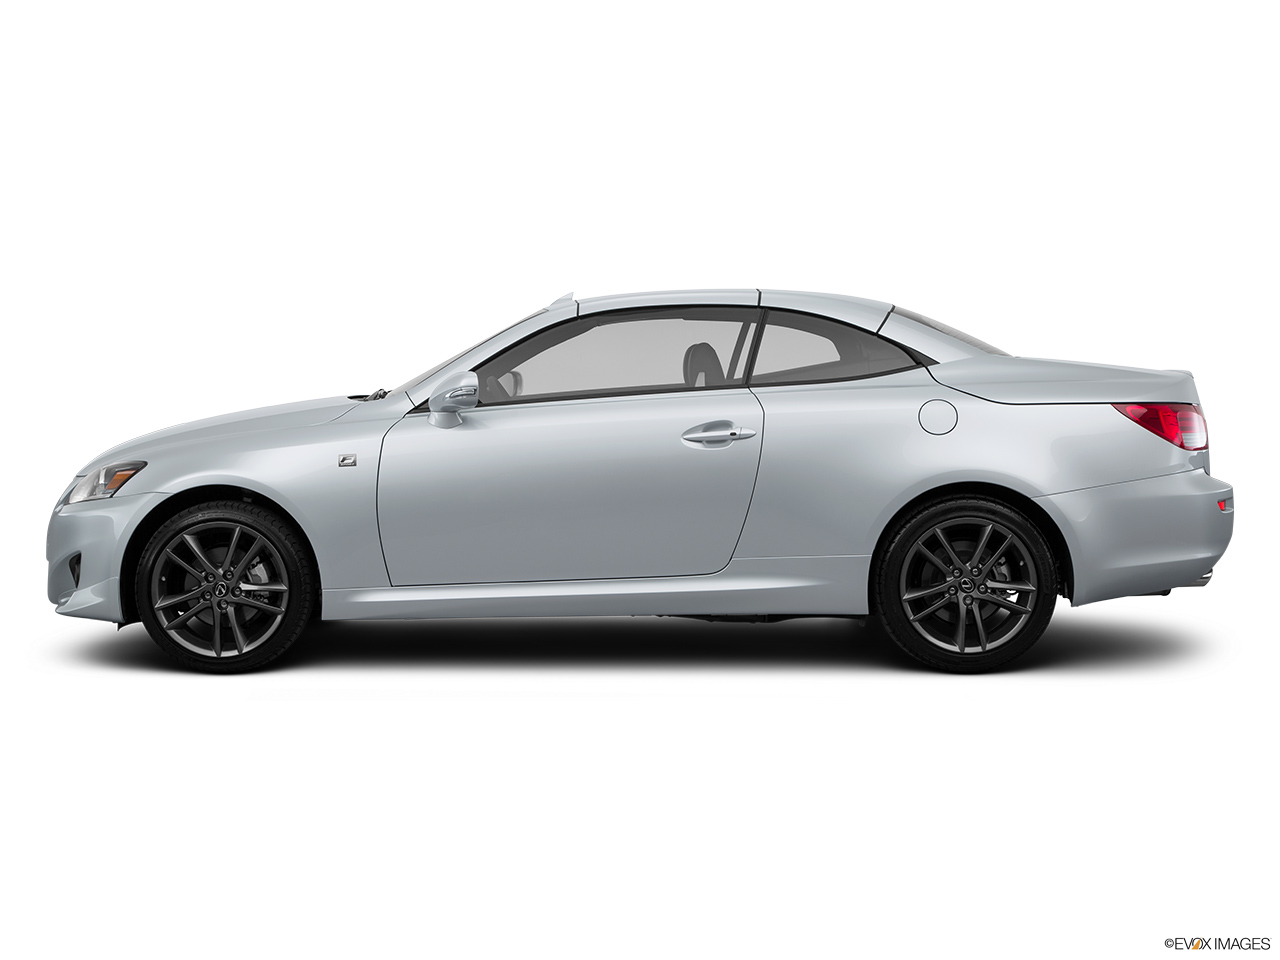 2015 Lexus IS C IS250 RWD Drivers side profile, convertible top up (convertibles only).